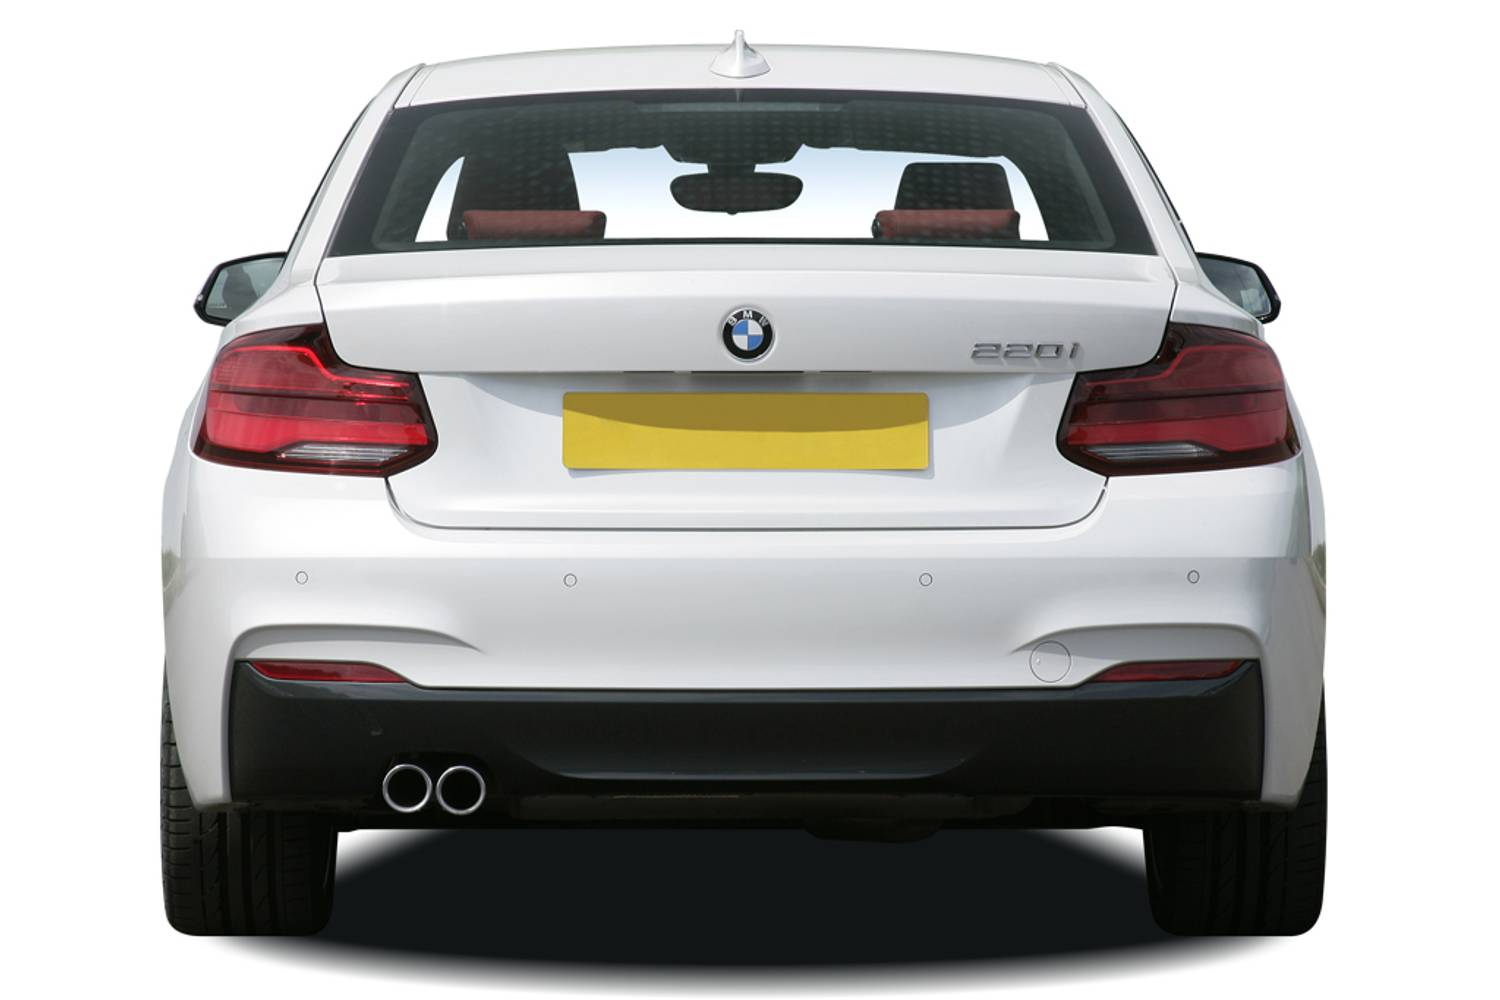 BMW 2 Series Coupe 2dr [Nav] Rear